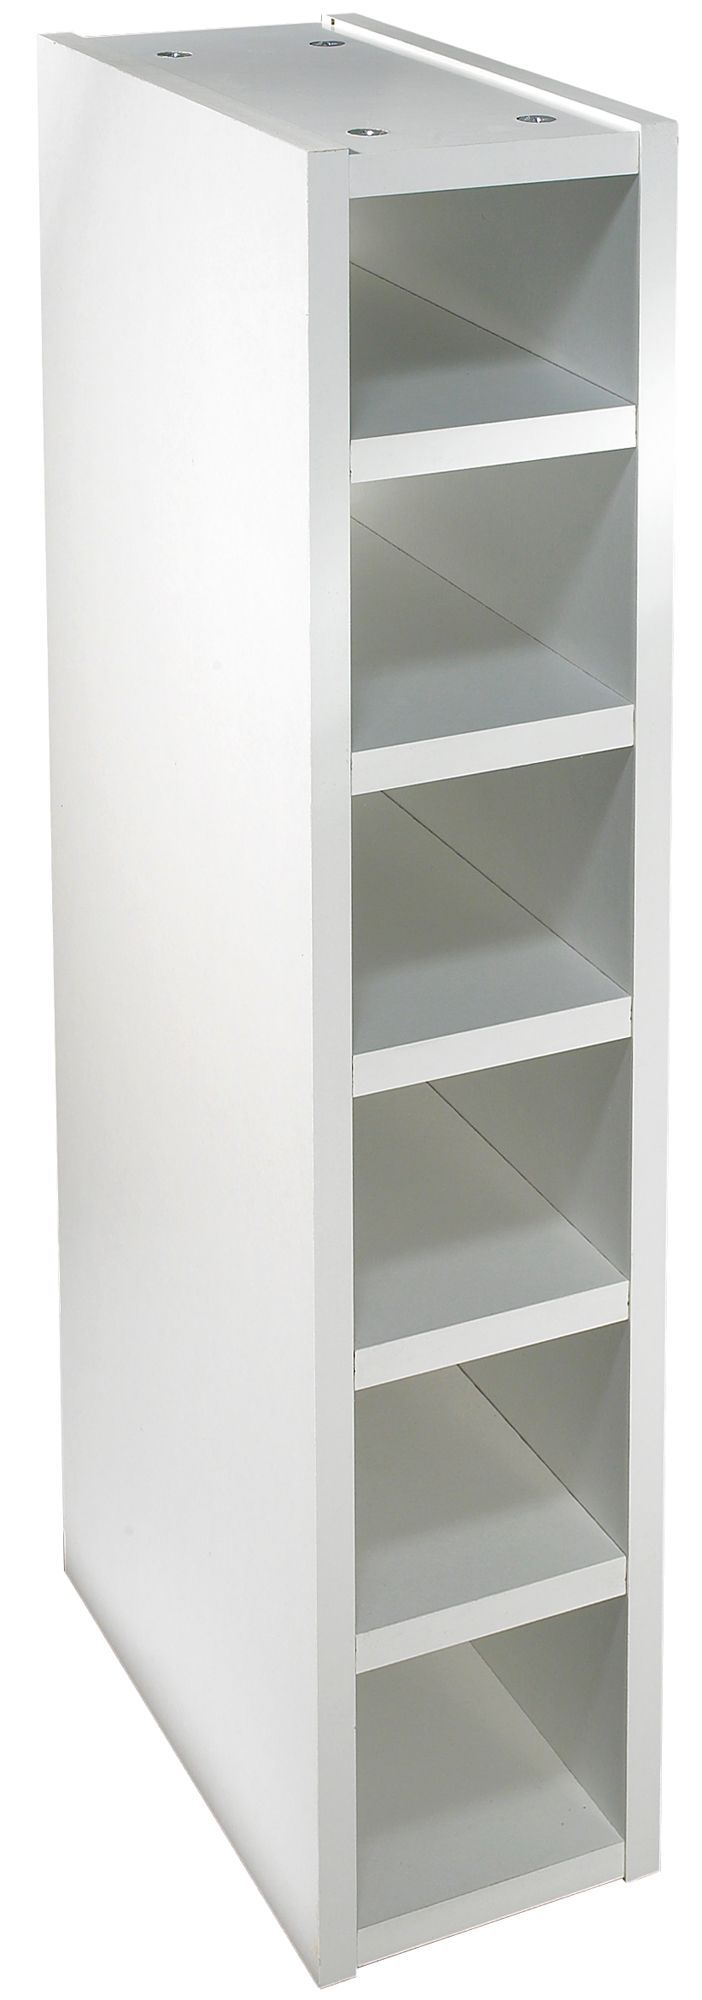 white wine rack cabinet. IT Kitchens White Wine Rack Cabinet (W)150mm | Departments DIY At B\u0026Q.